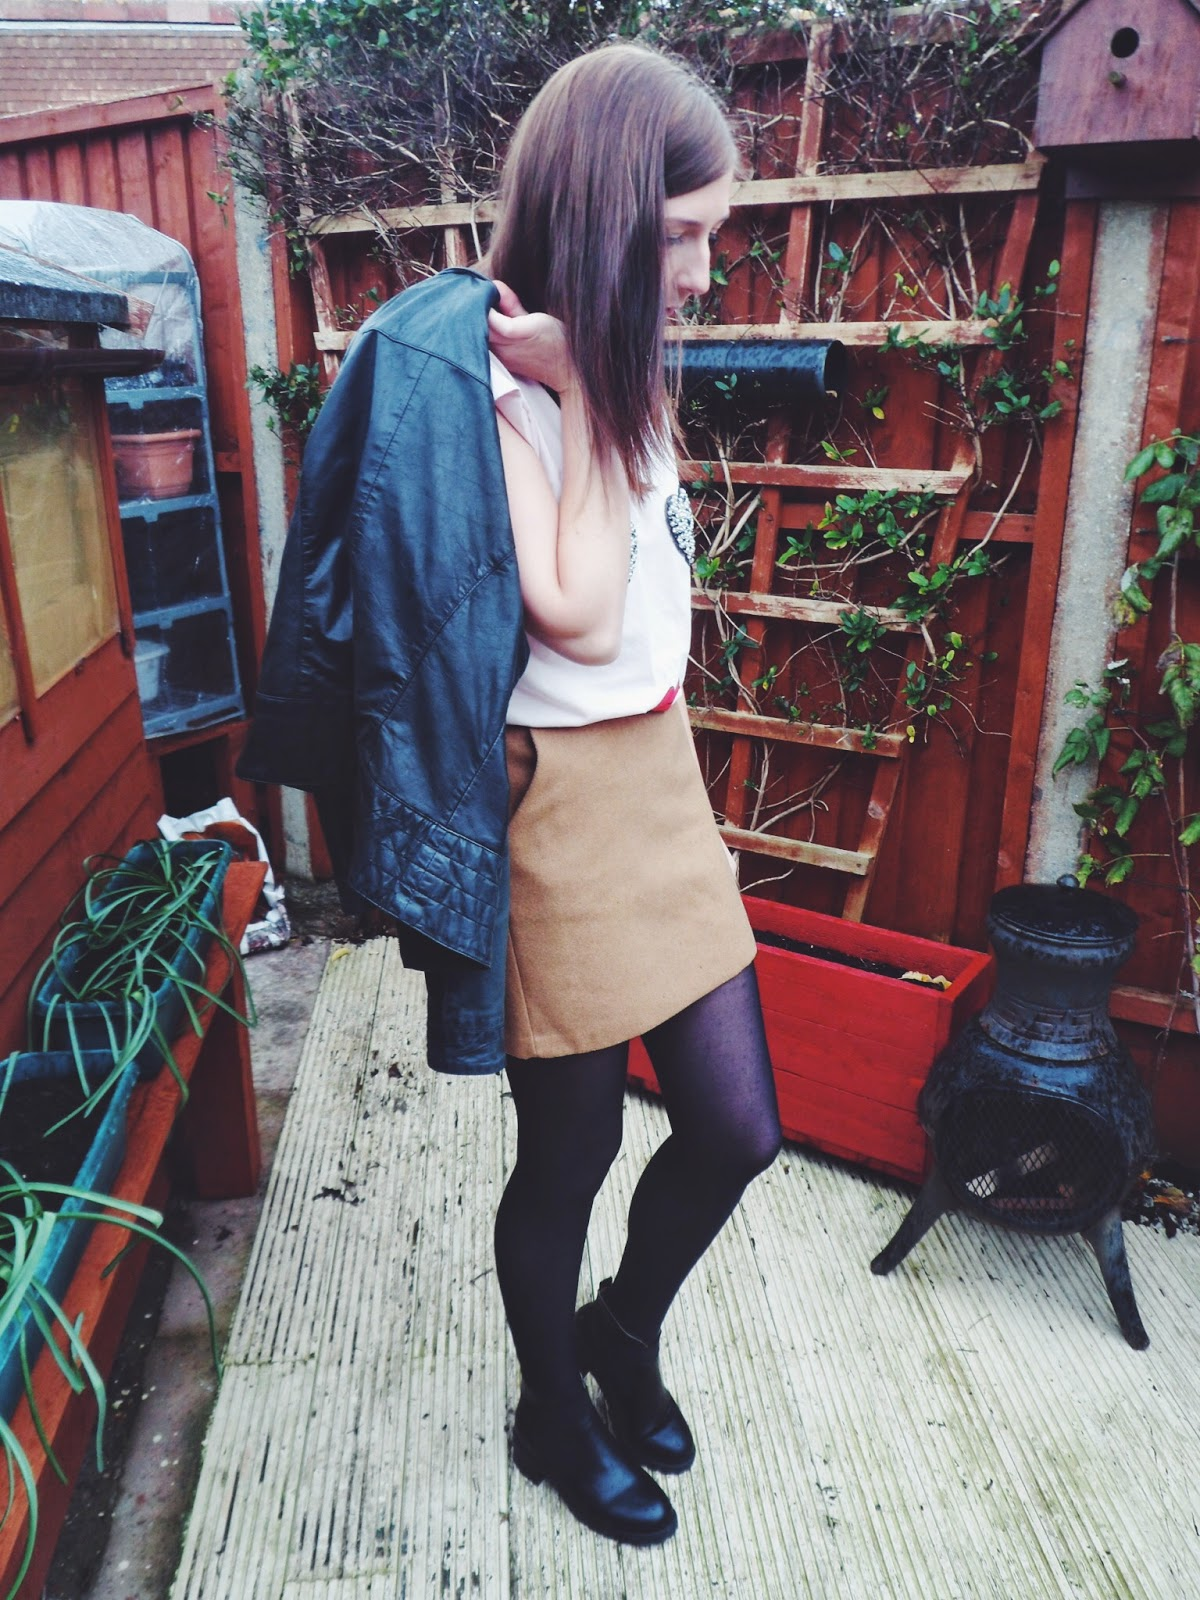 asos, asseenonme, wiw, whatimwearing, ootd, outfitoftheday, lotd, lookoftheday, fbloggers, fashionpost, fashionbloggers, camelskirt, matalan, asos, riverisland, primark, Next, fblogger, style